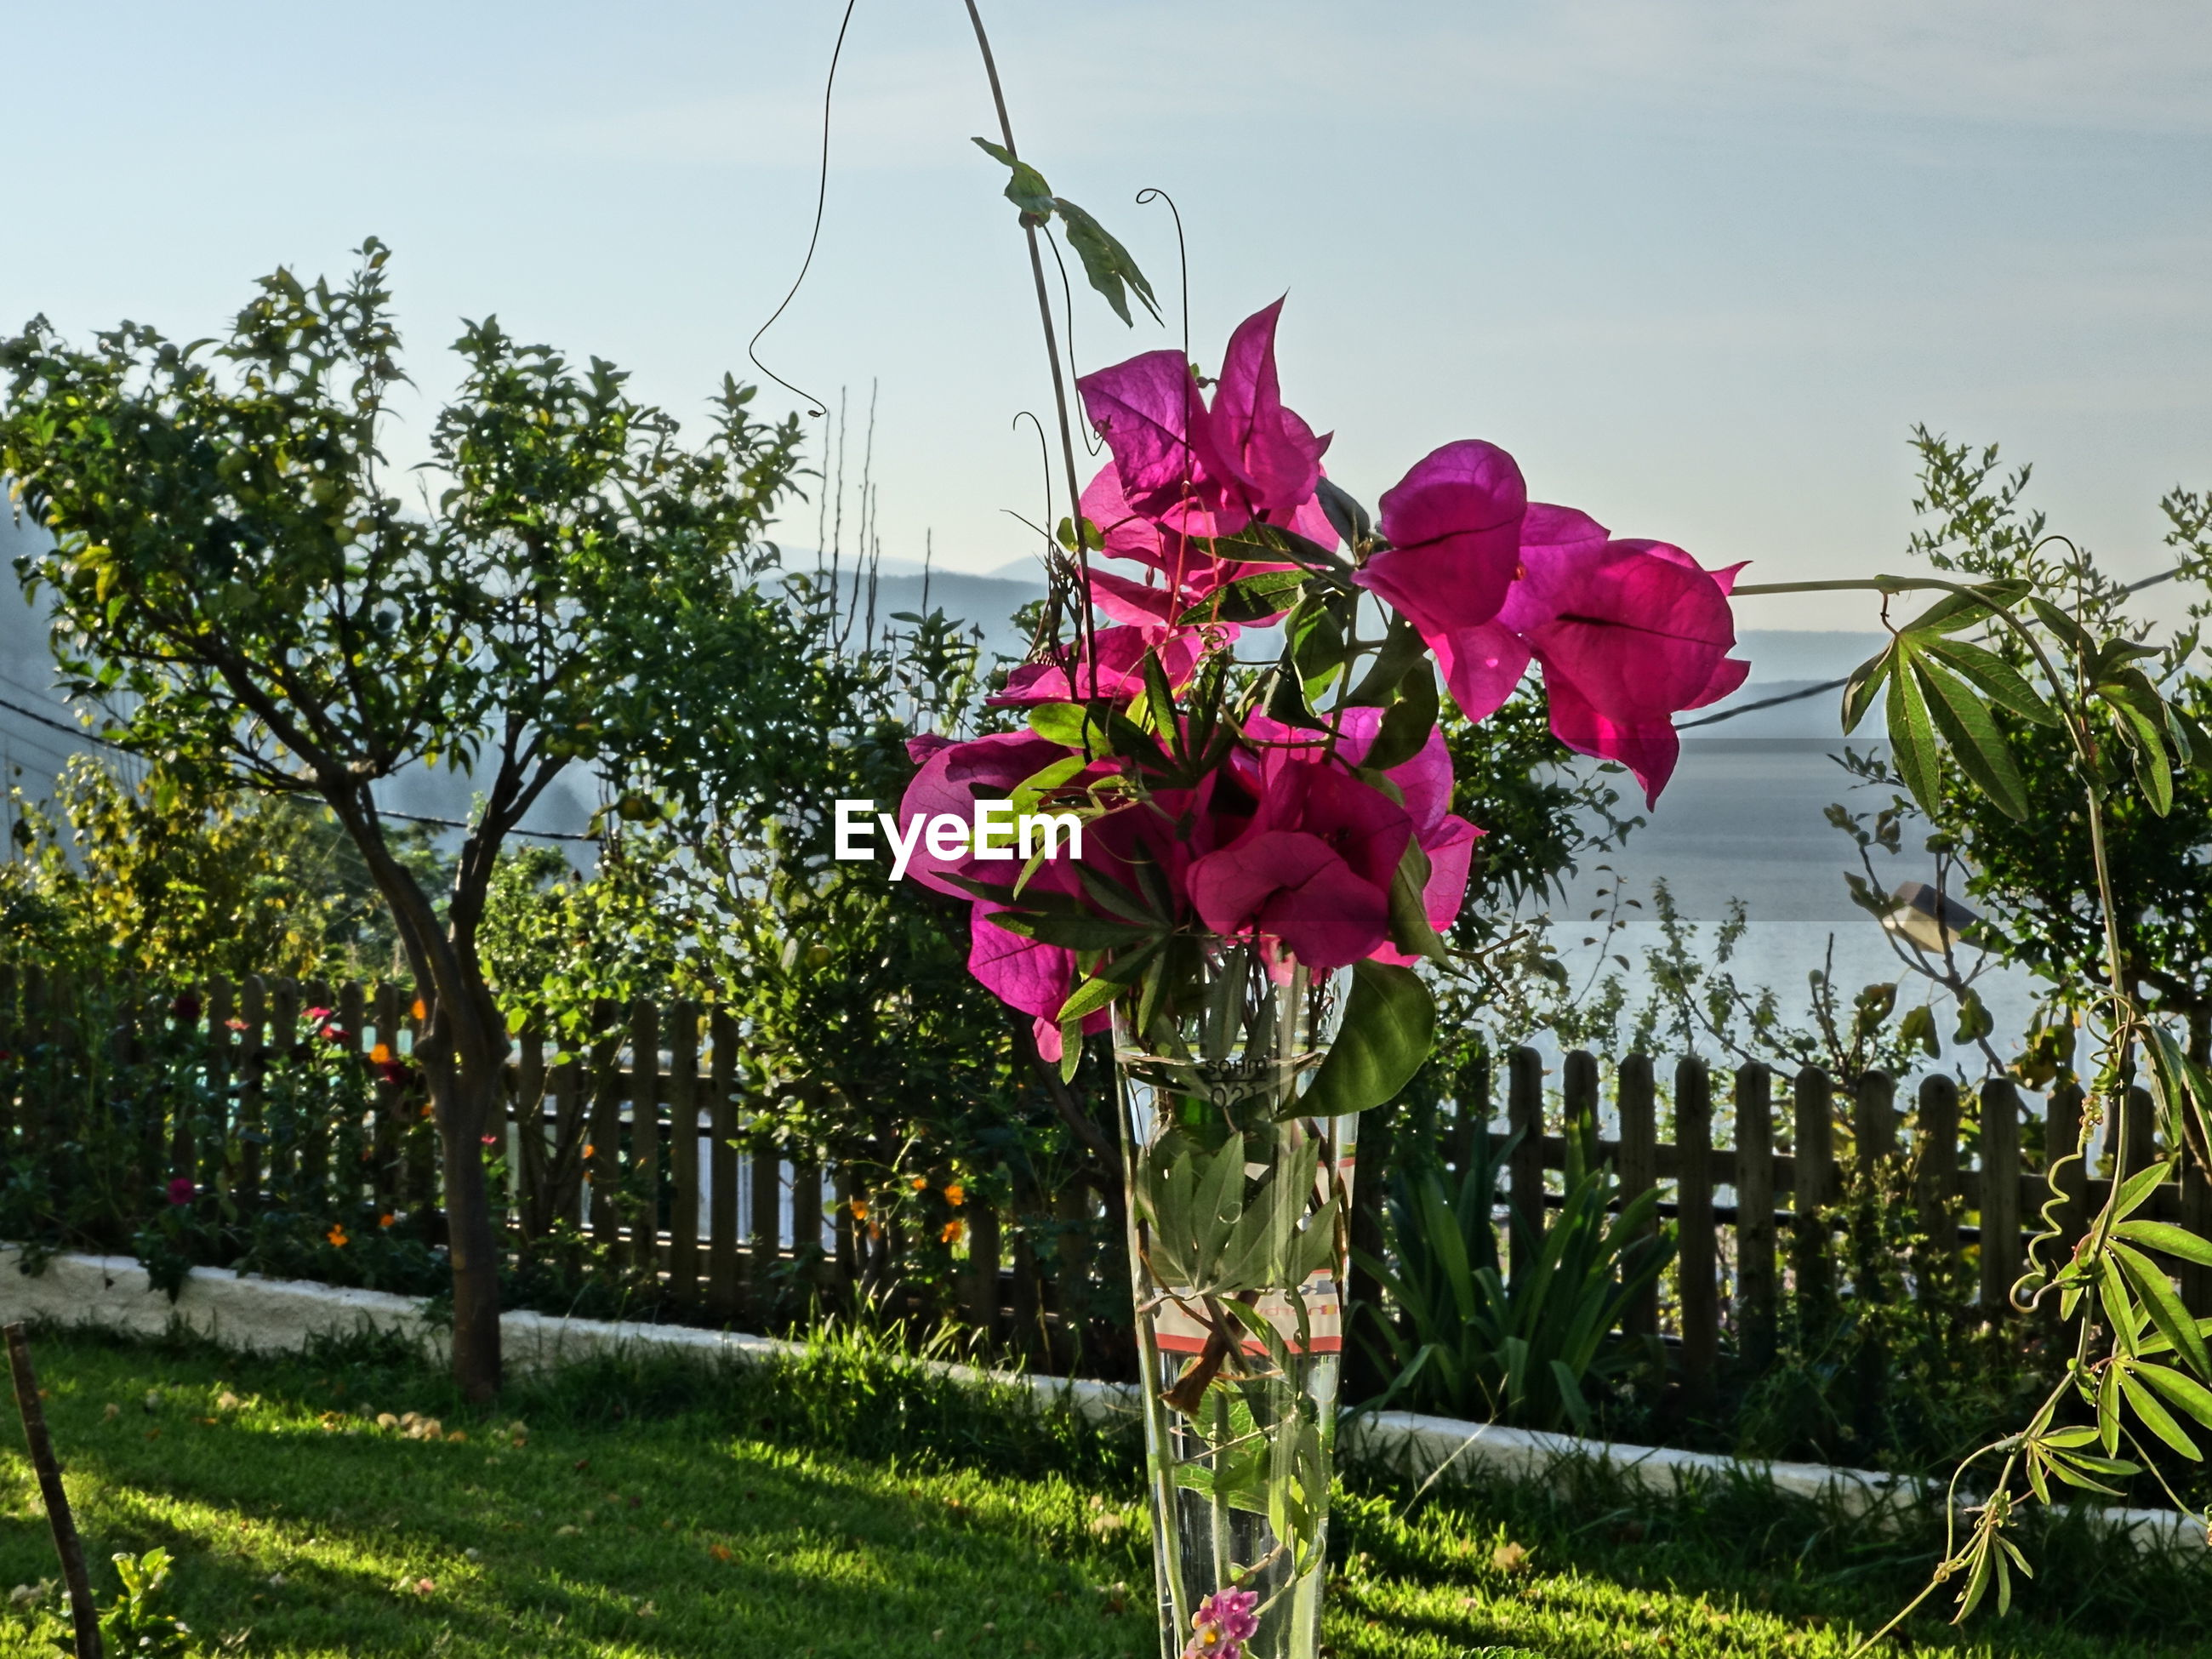 flower, freshness, growth, fragility, tree, sky, beauty in nature, nature, blooming, building exterior, plant, built structure, blossom, in bloom, low angle view, leaf, petal, pink color, field, architecture